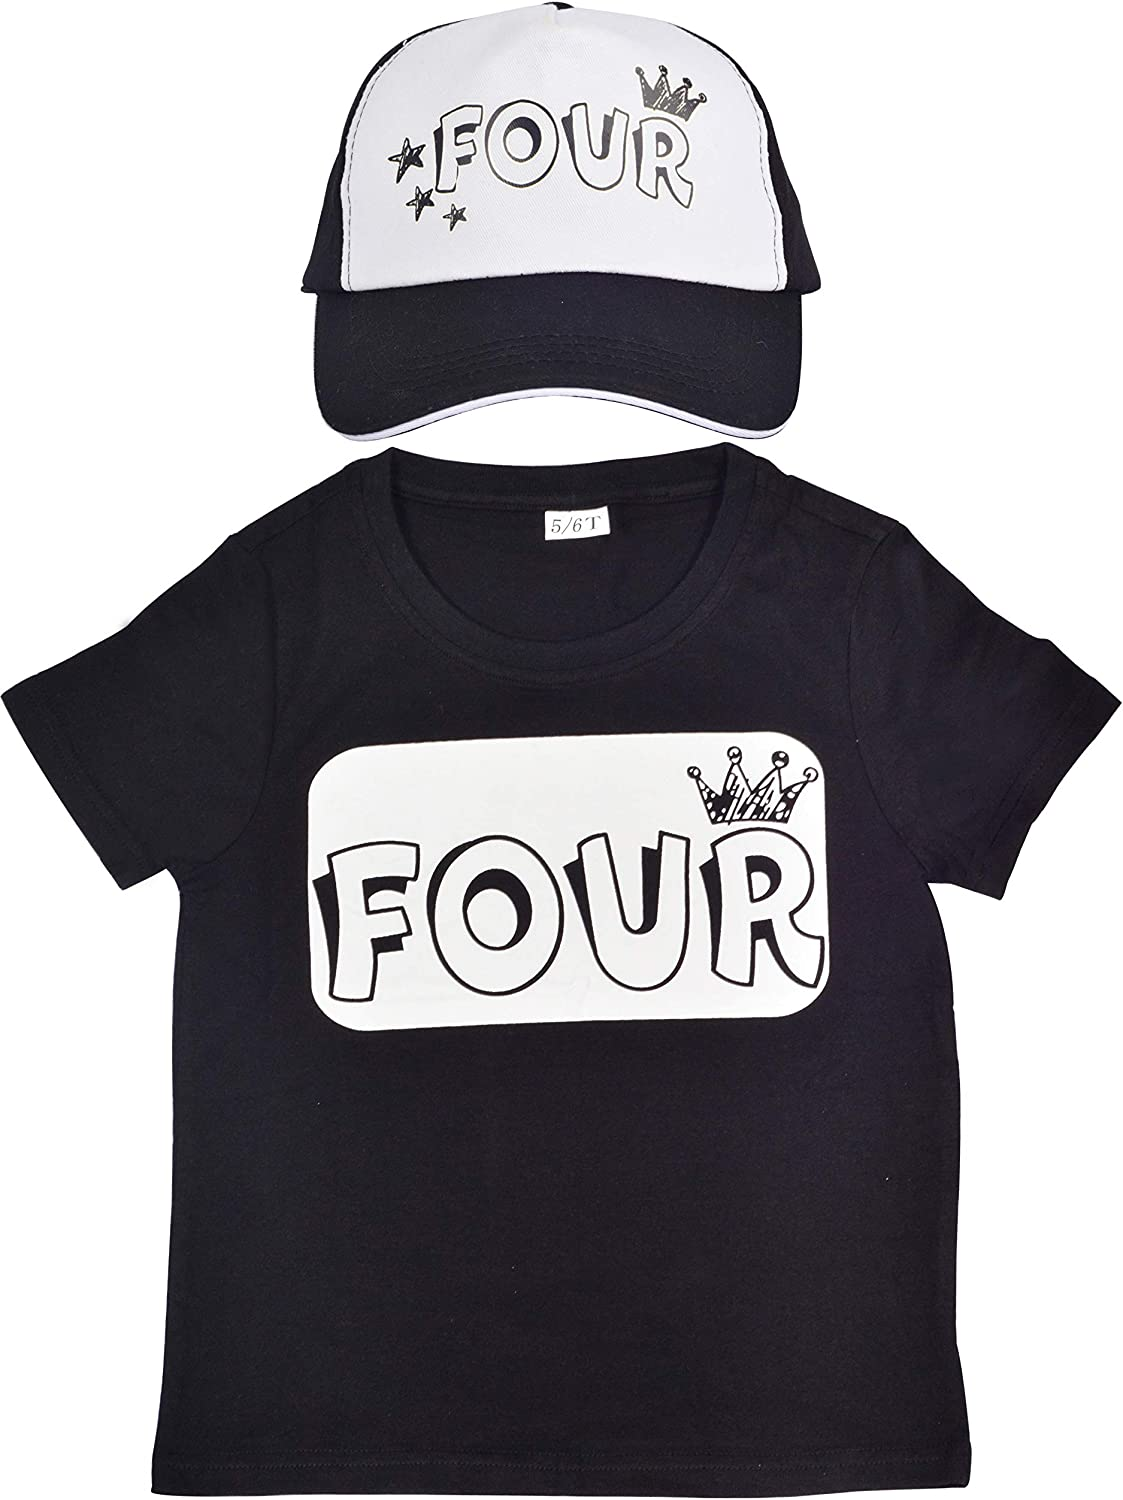 4th Birthday Shirt for Boy, 4 Years Old Birthday Party, I am Four, 4th Birthday Hat, Truker Hat for Kids 4th Birthday, Happy 4th Birthday Shirt with FOUR Pattern Print, Perfect Gift Pack for 4 Year Ol